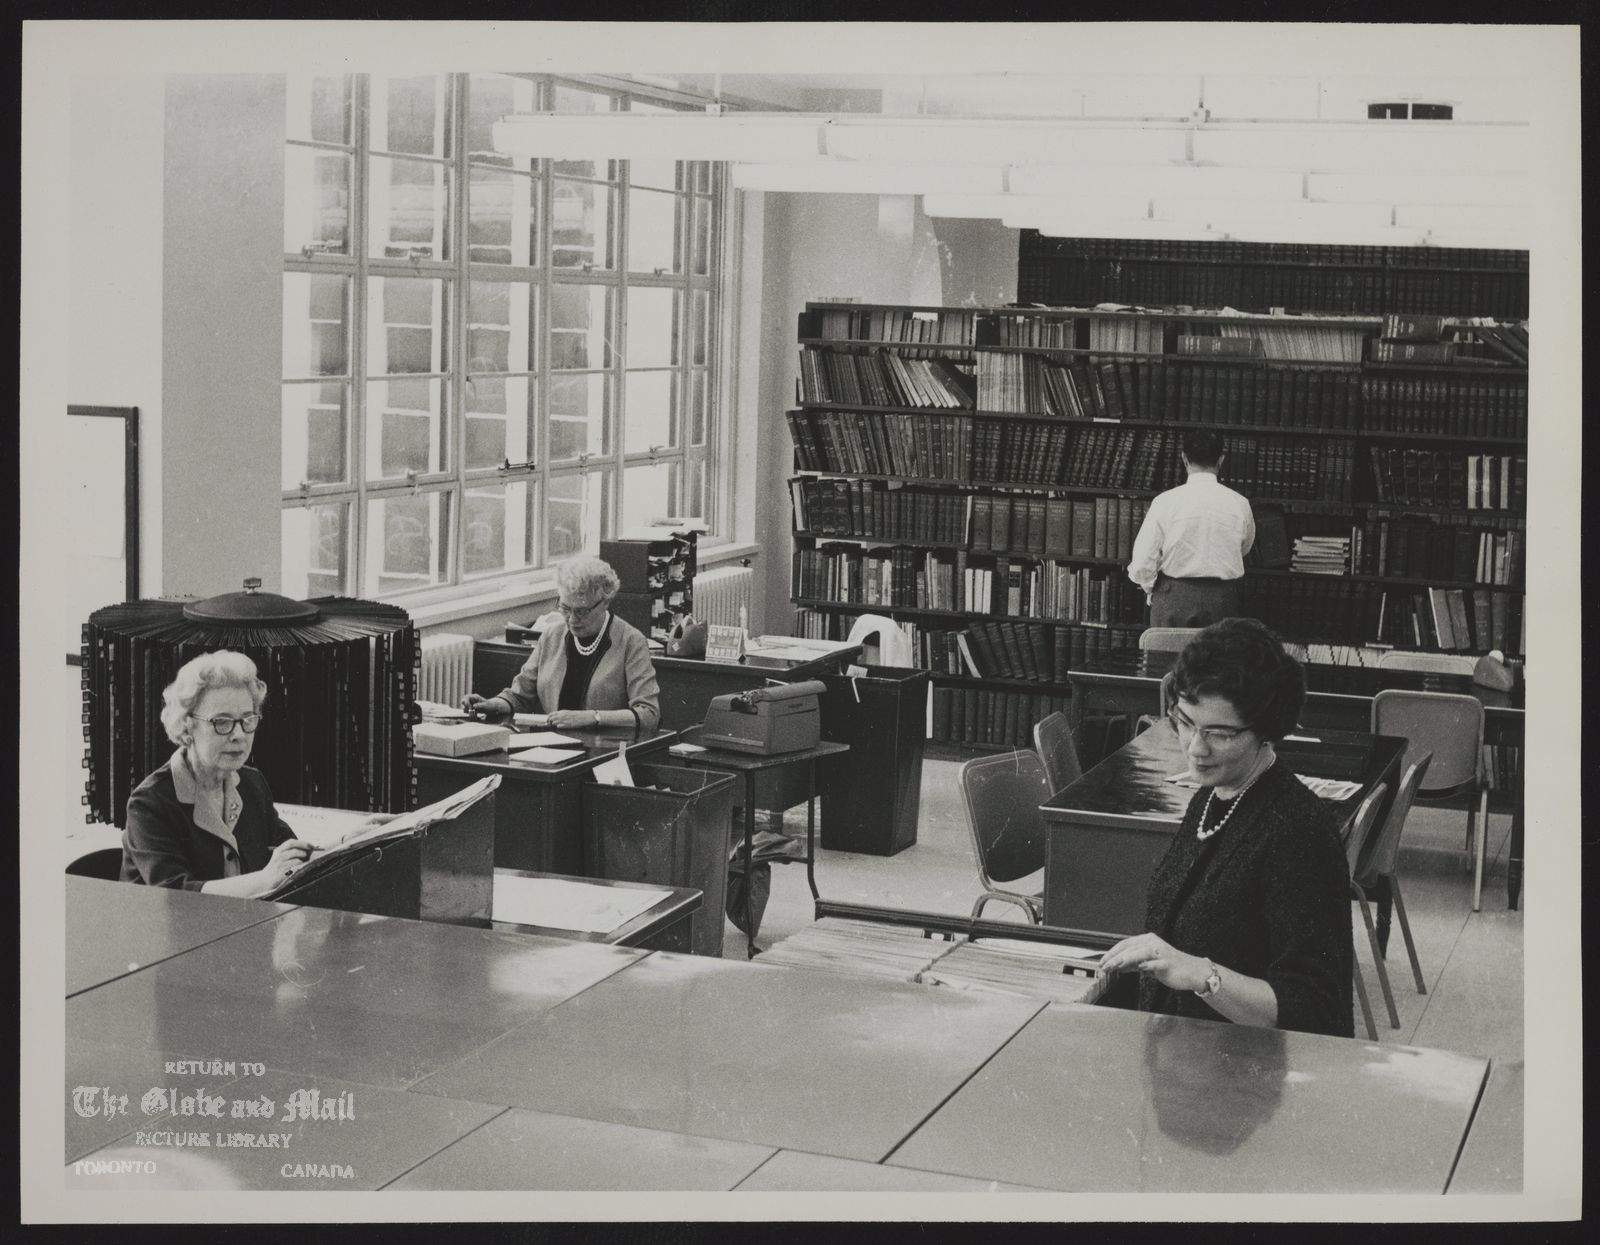 TORONTO CANADA [Globe and Mail staff members at work in the editorial library of the William H. Wright building, home of The Globe and Mail in downtown Toronto. Library staff, left to right: Evelyn Haffey, Kay Chalmer, David Rhydwen at rear with back to camera, Cathie Cunningham. Photo by John Boyd / The Globe and Mai